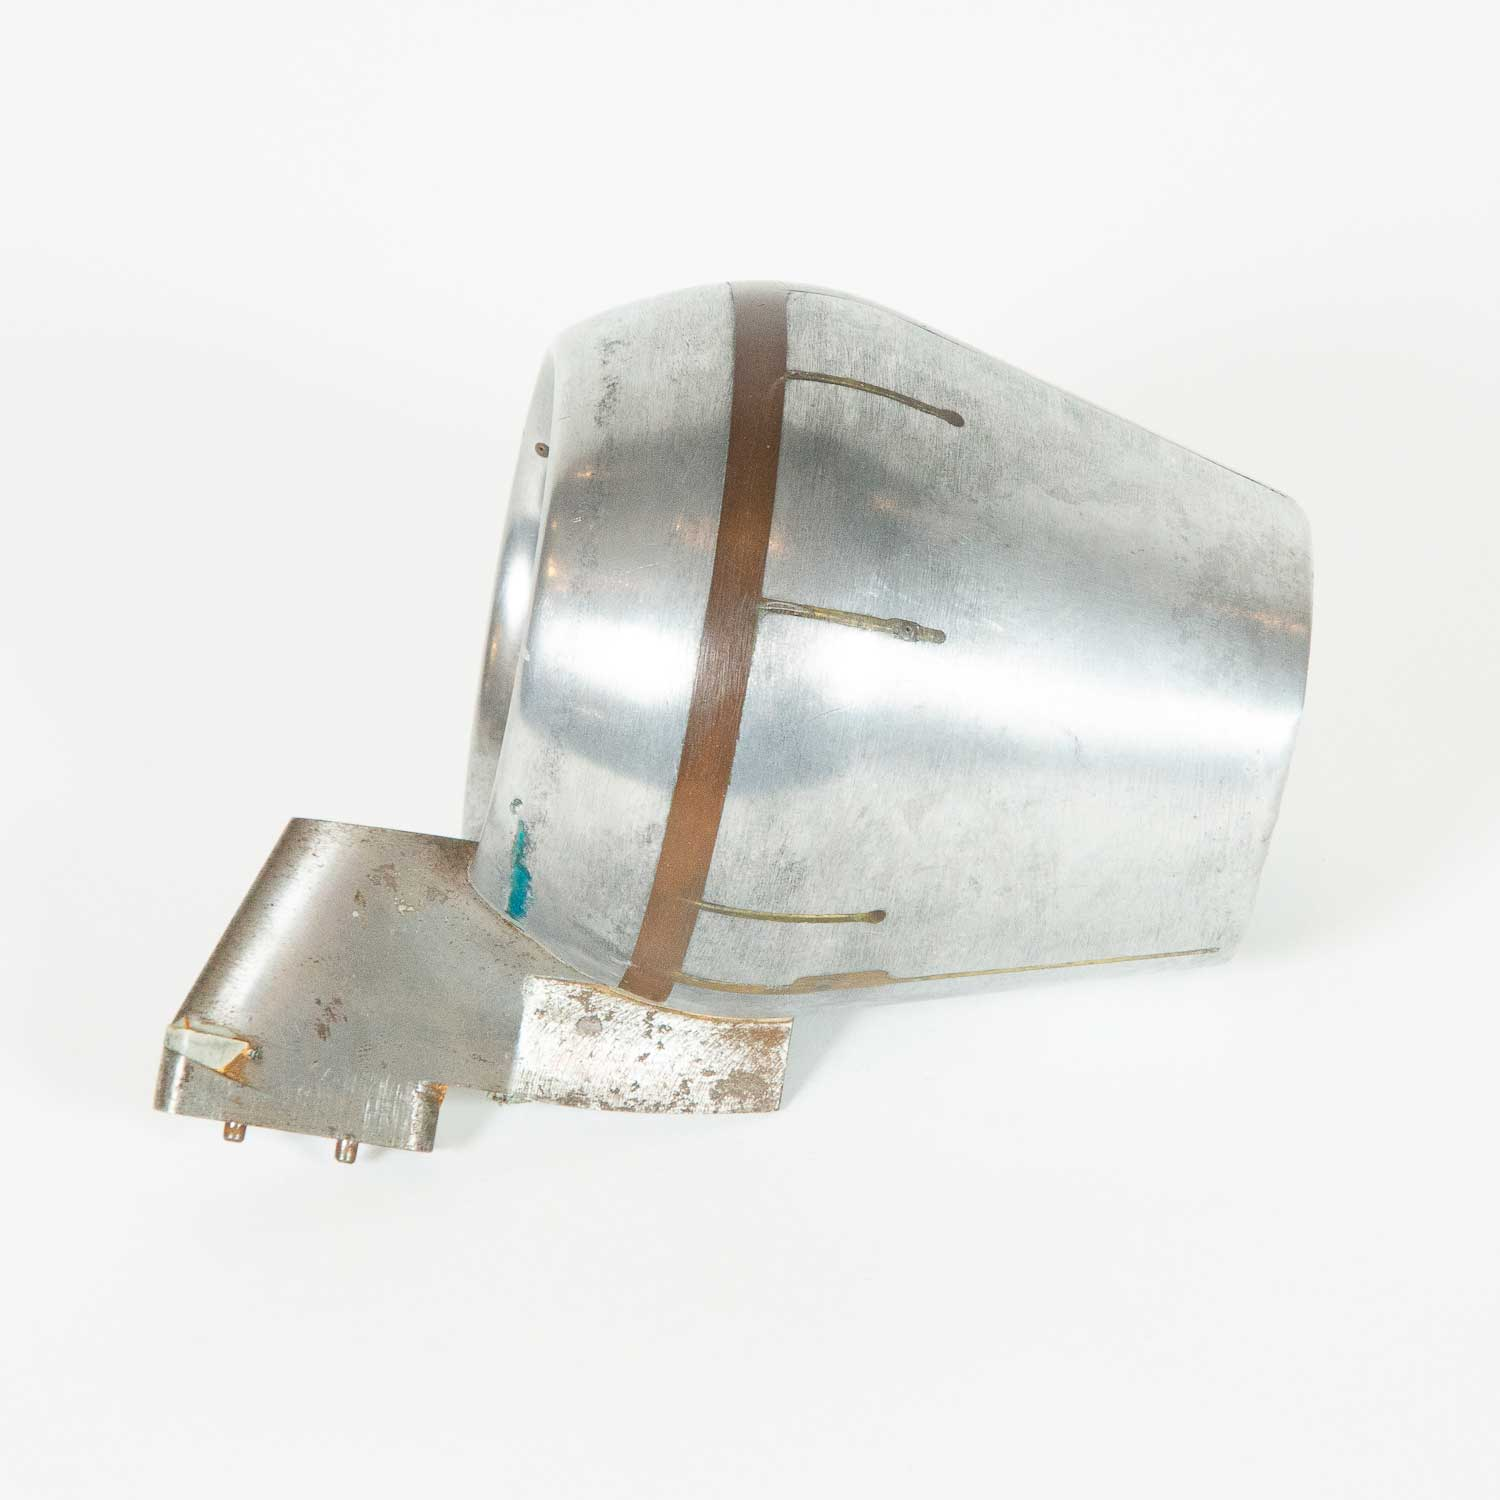 Engine wind tunnel model